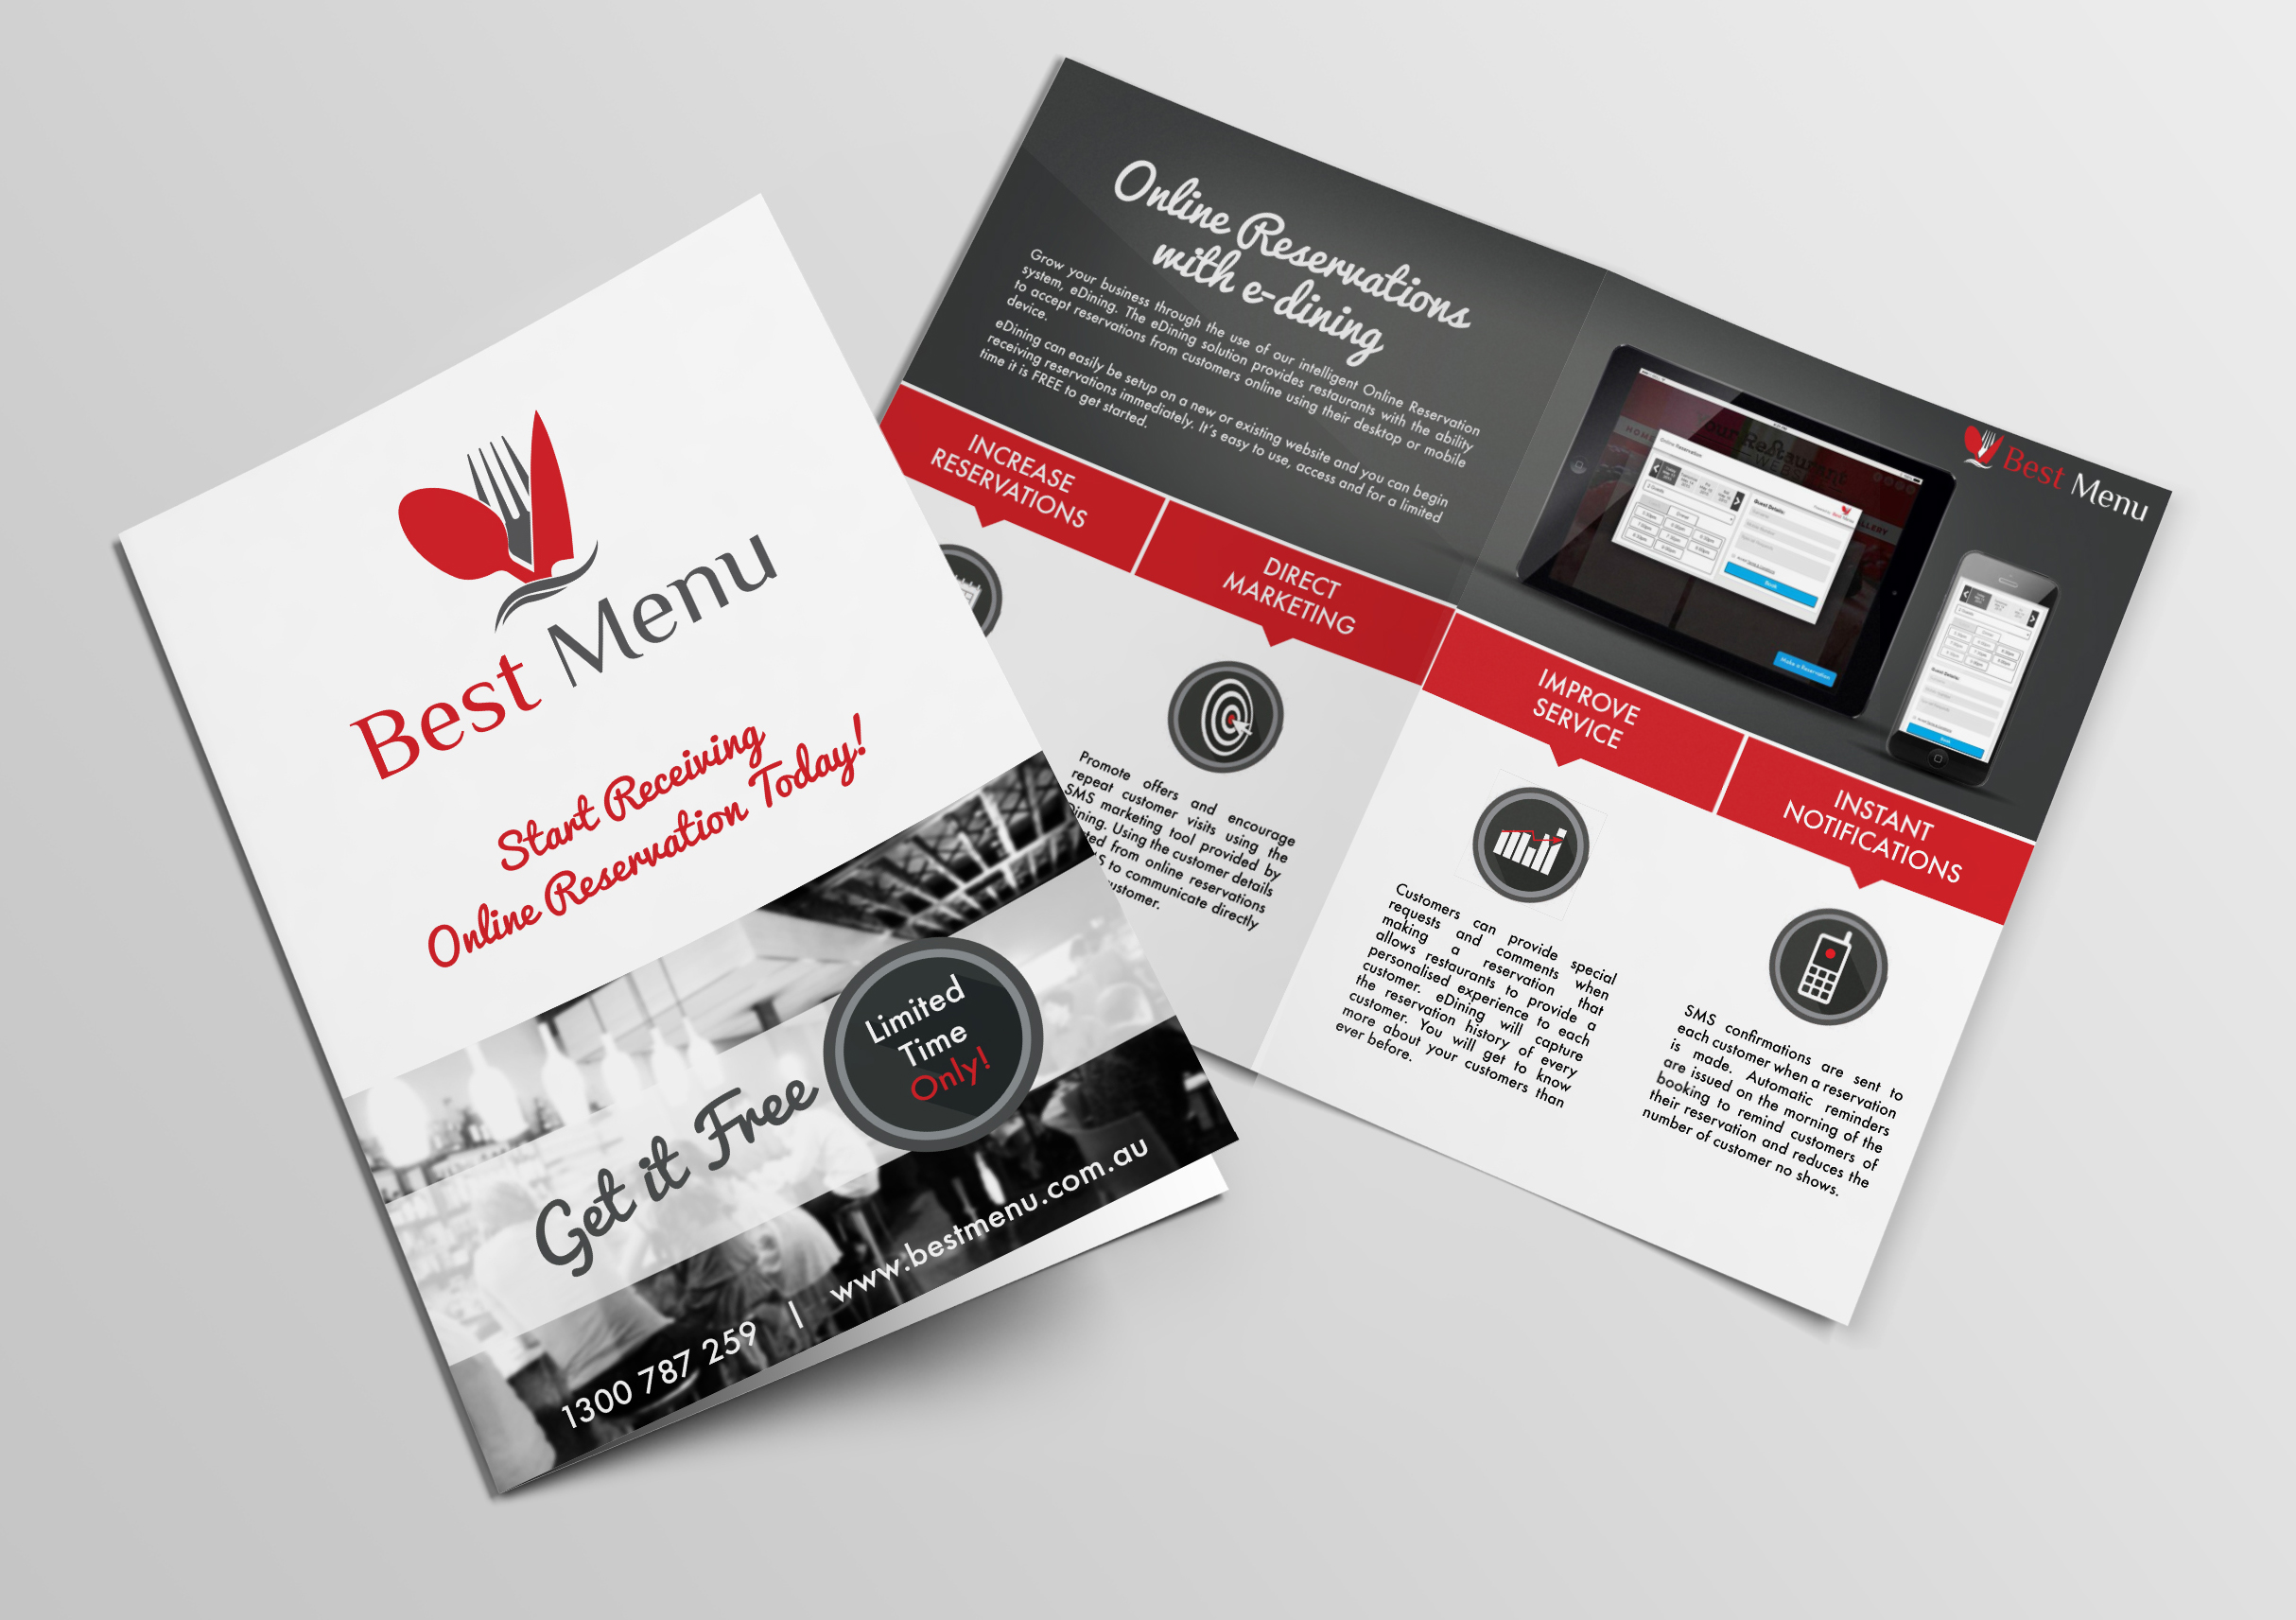 Promotional Flyer for BestMenu.